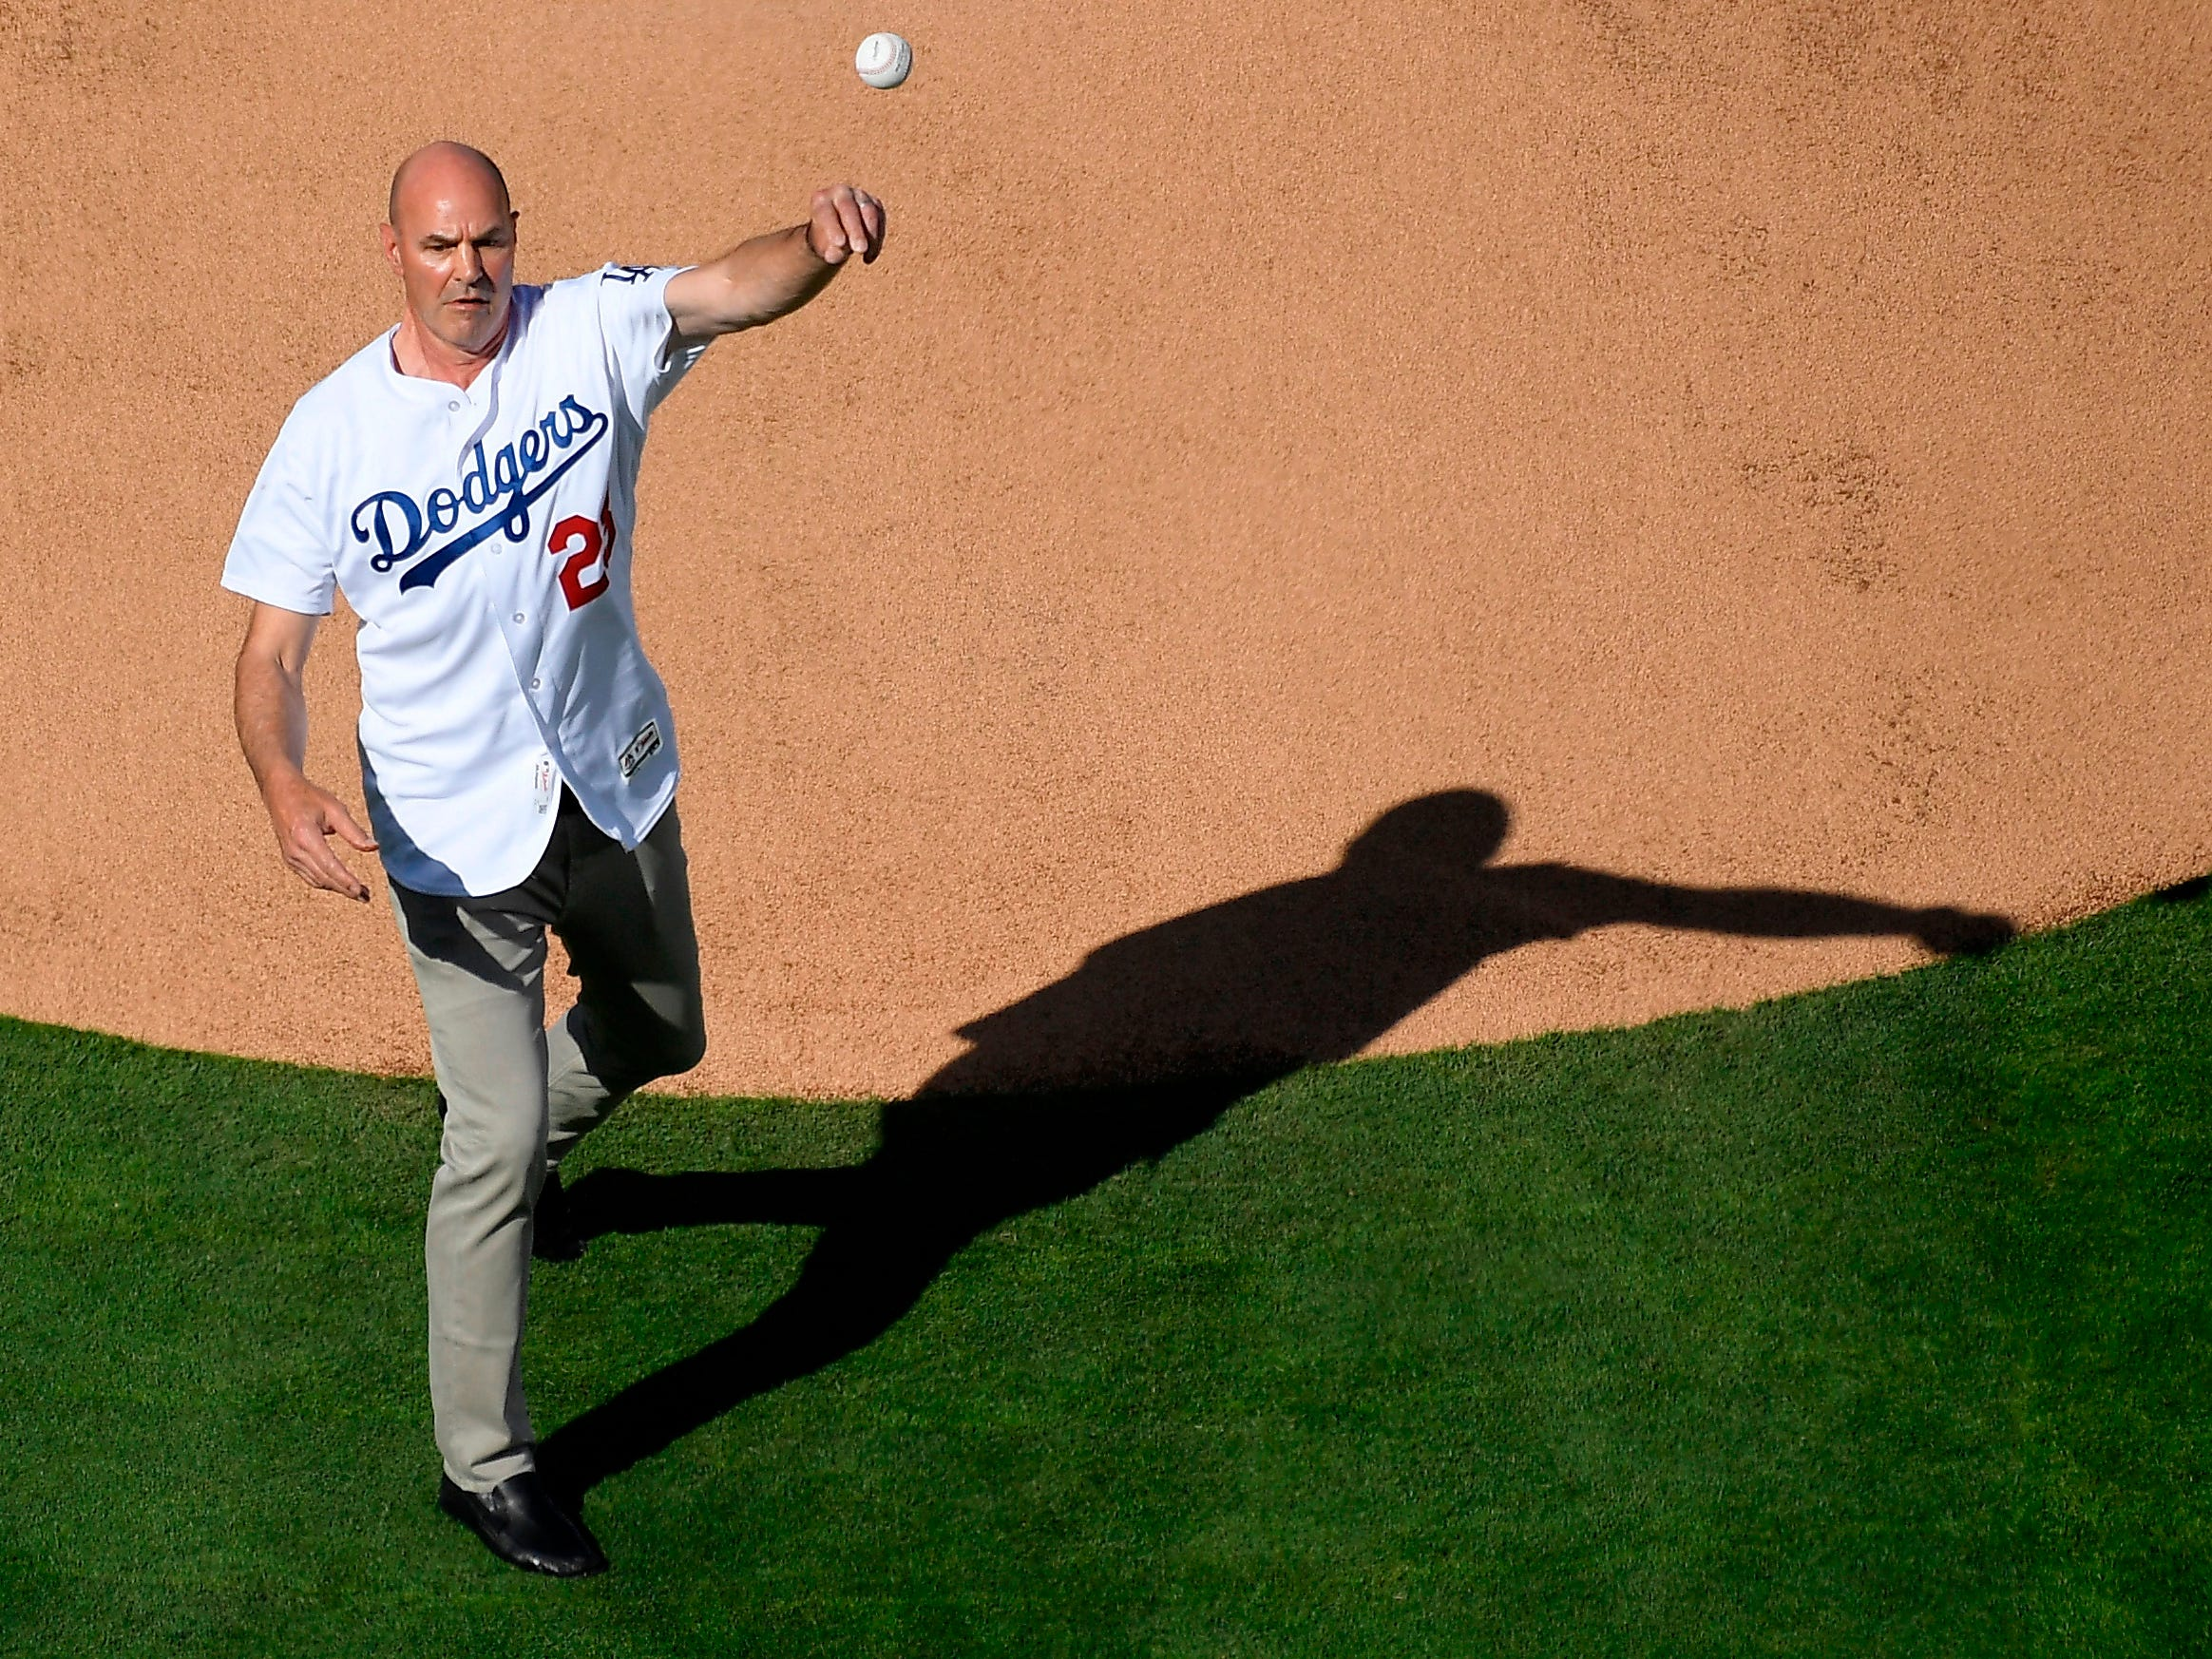 A hero for the Los Angeles Dodgers in the World Series 30 years ago, Gibson was honored on opening day in Los Angeles in 2018, throwing out the ceremonial first pitch. His appearance raised more than $300,000 for his Parkinson's foundation.